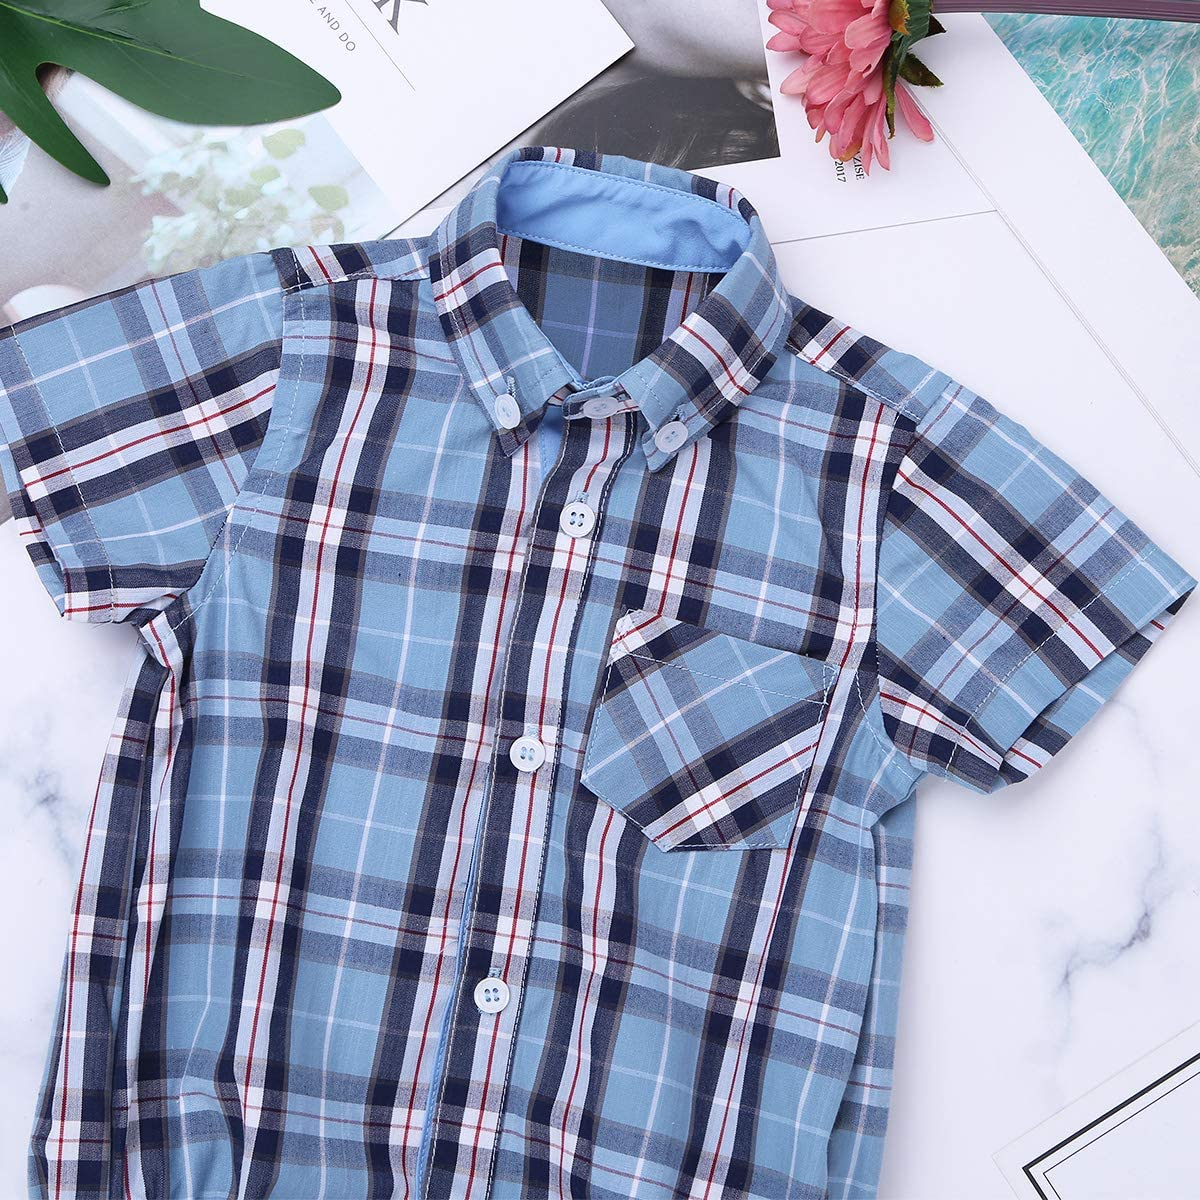 CHICTRY Baby Boys Infant Gentleman Style Romper Shirt Cotton Short Sleeve Plaid Jumpsuit Clothes